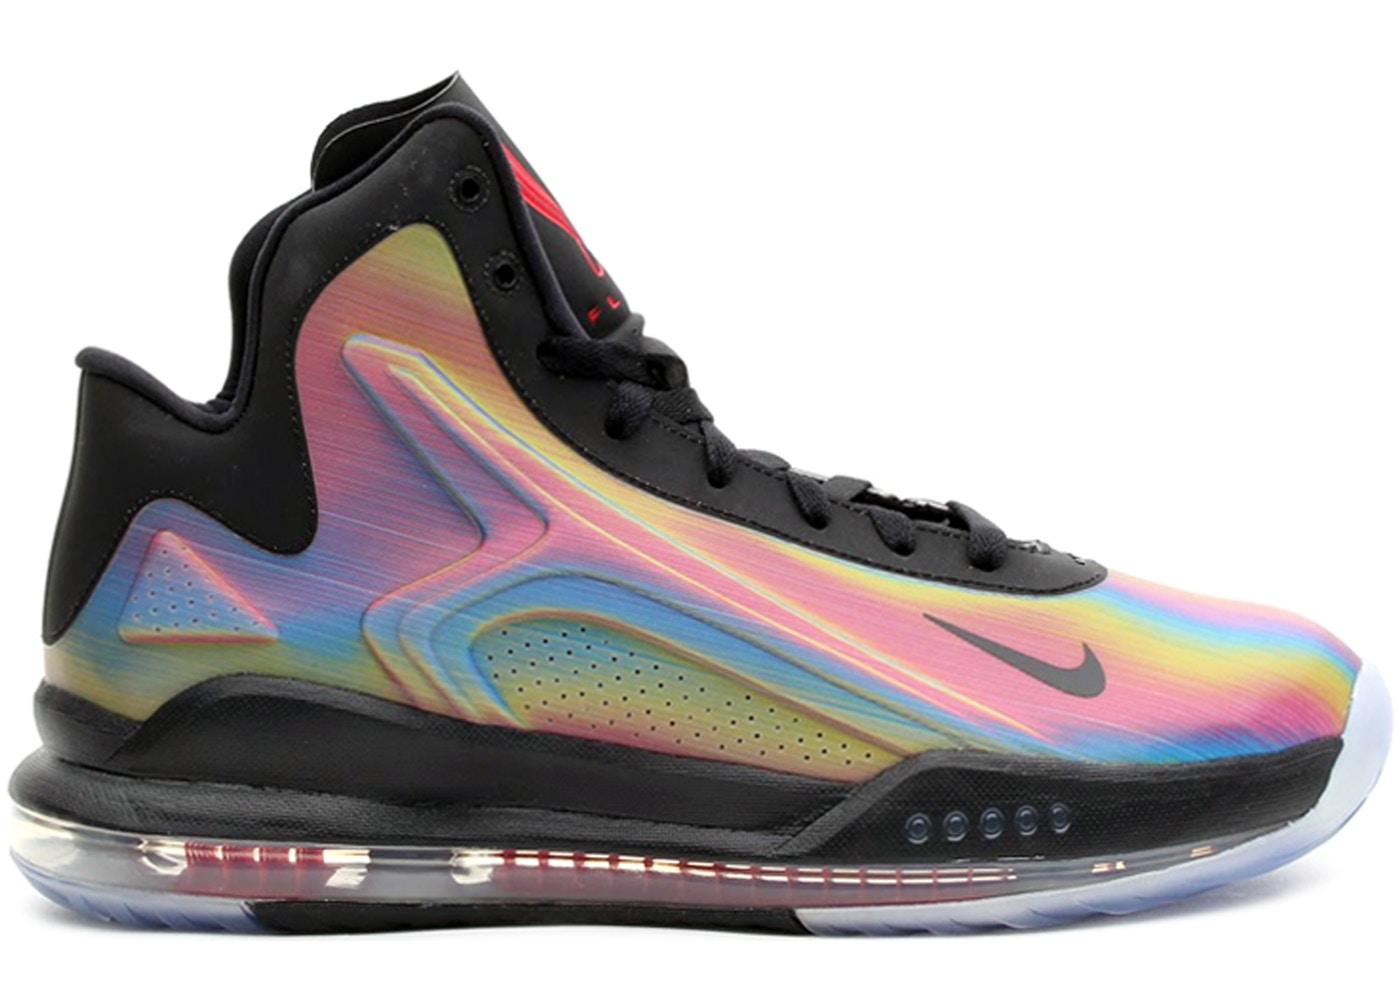 ナイキ NIKE マックス スニーカー 【 HYPERFLIGHT MAX HOLOGRAM UNIVERSITY RED BLACKUNIVERSITY 】 メンズ